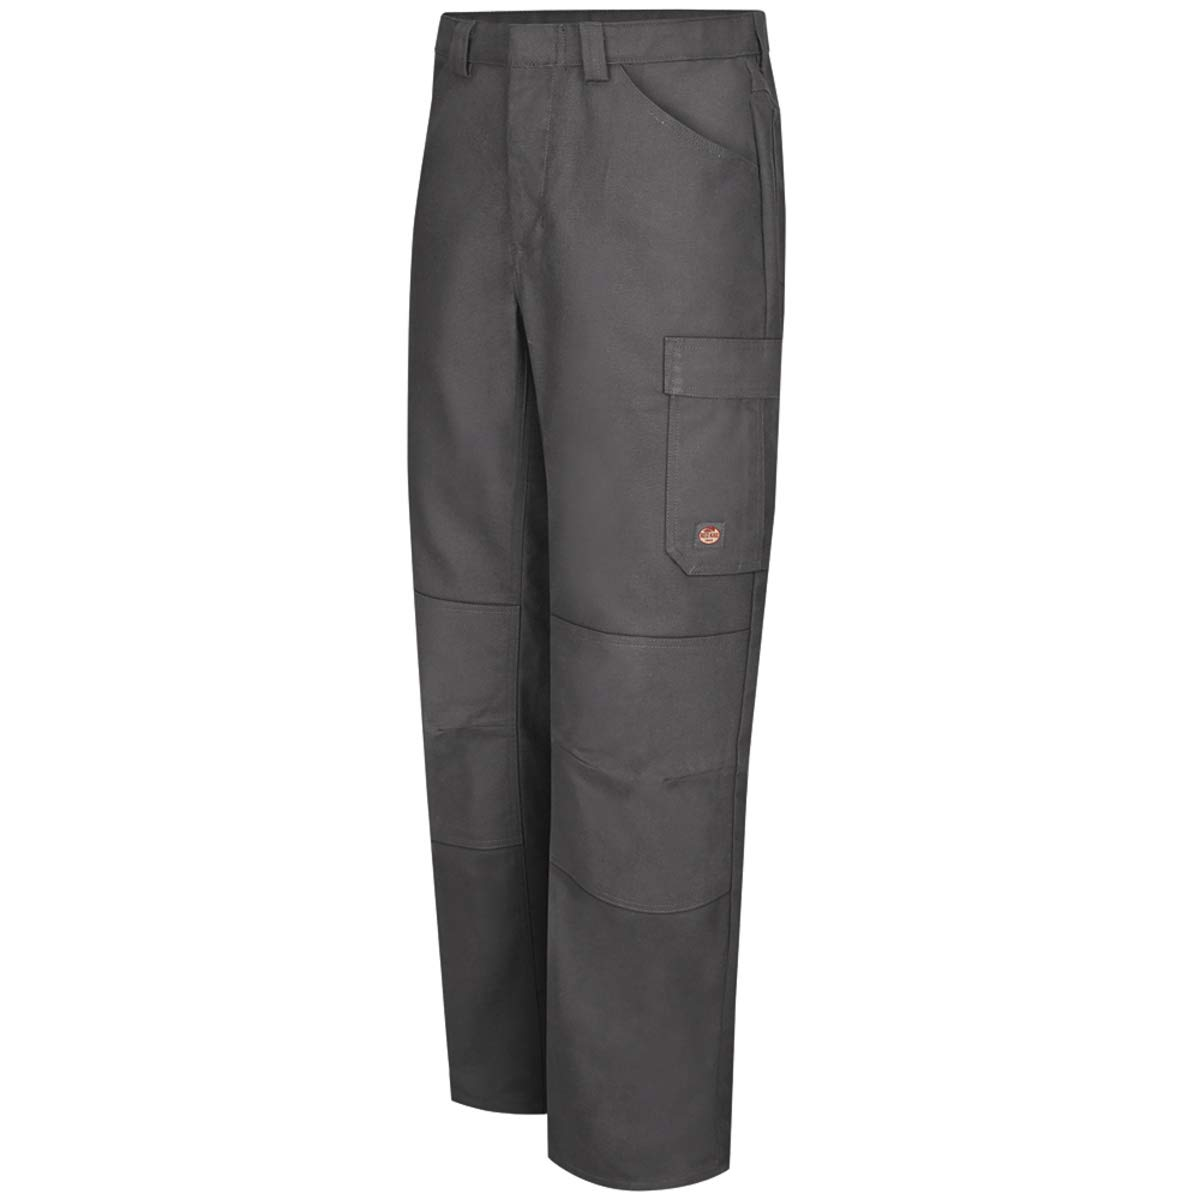 Red Kap 40'' X 32'' Charcoal 8 Ounce Polyester/Cotton/Spandex Pants With Button Closure by BULWARKRED KAP (Image #1)